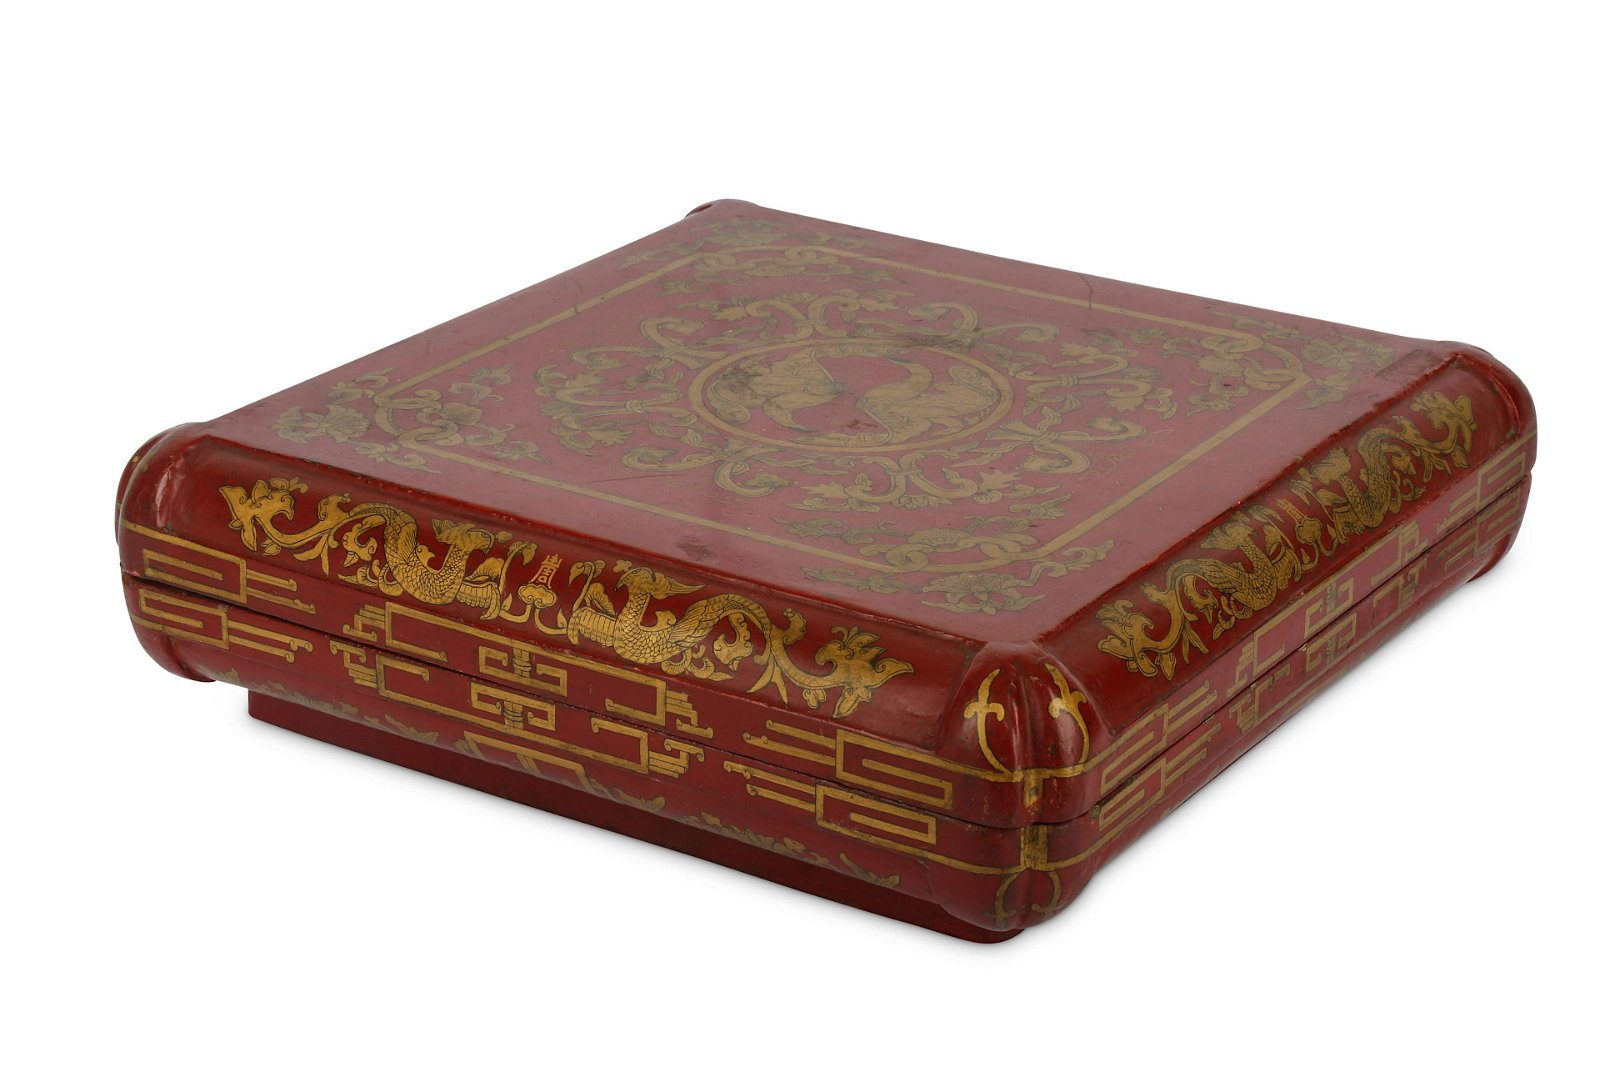 A CHINESE CINNABAR AND GILT-LACQUER WOOD SQUARE-SE